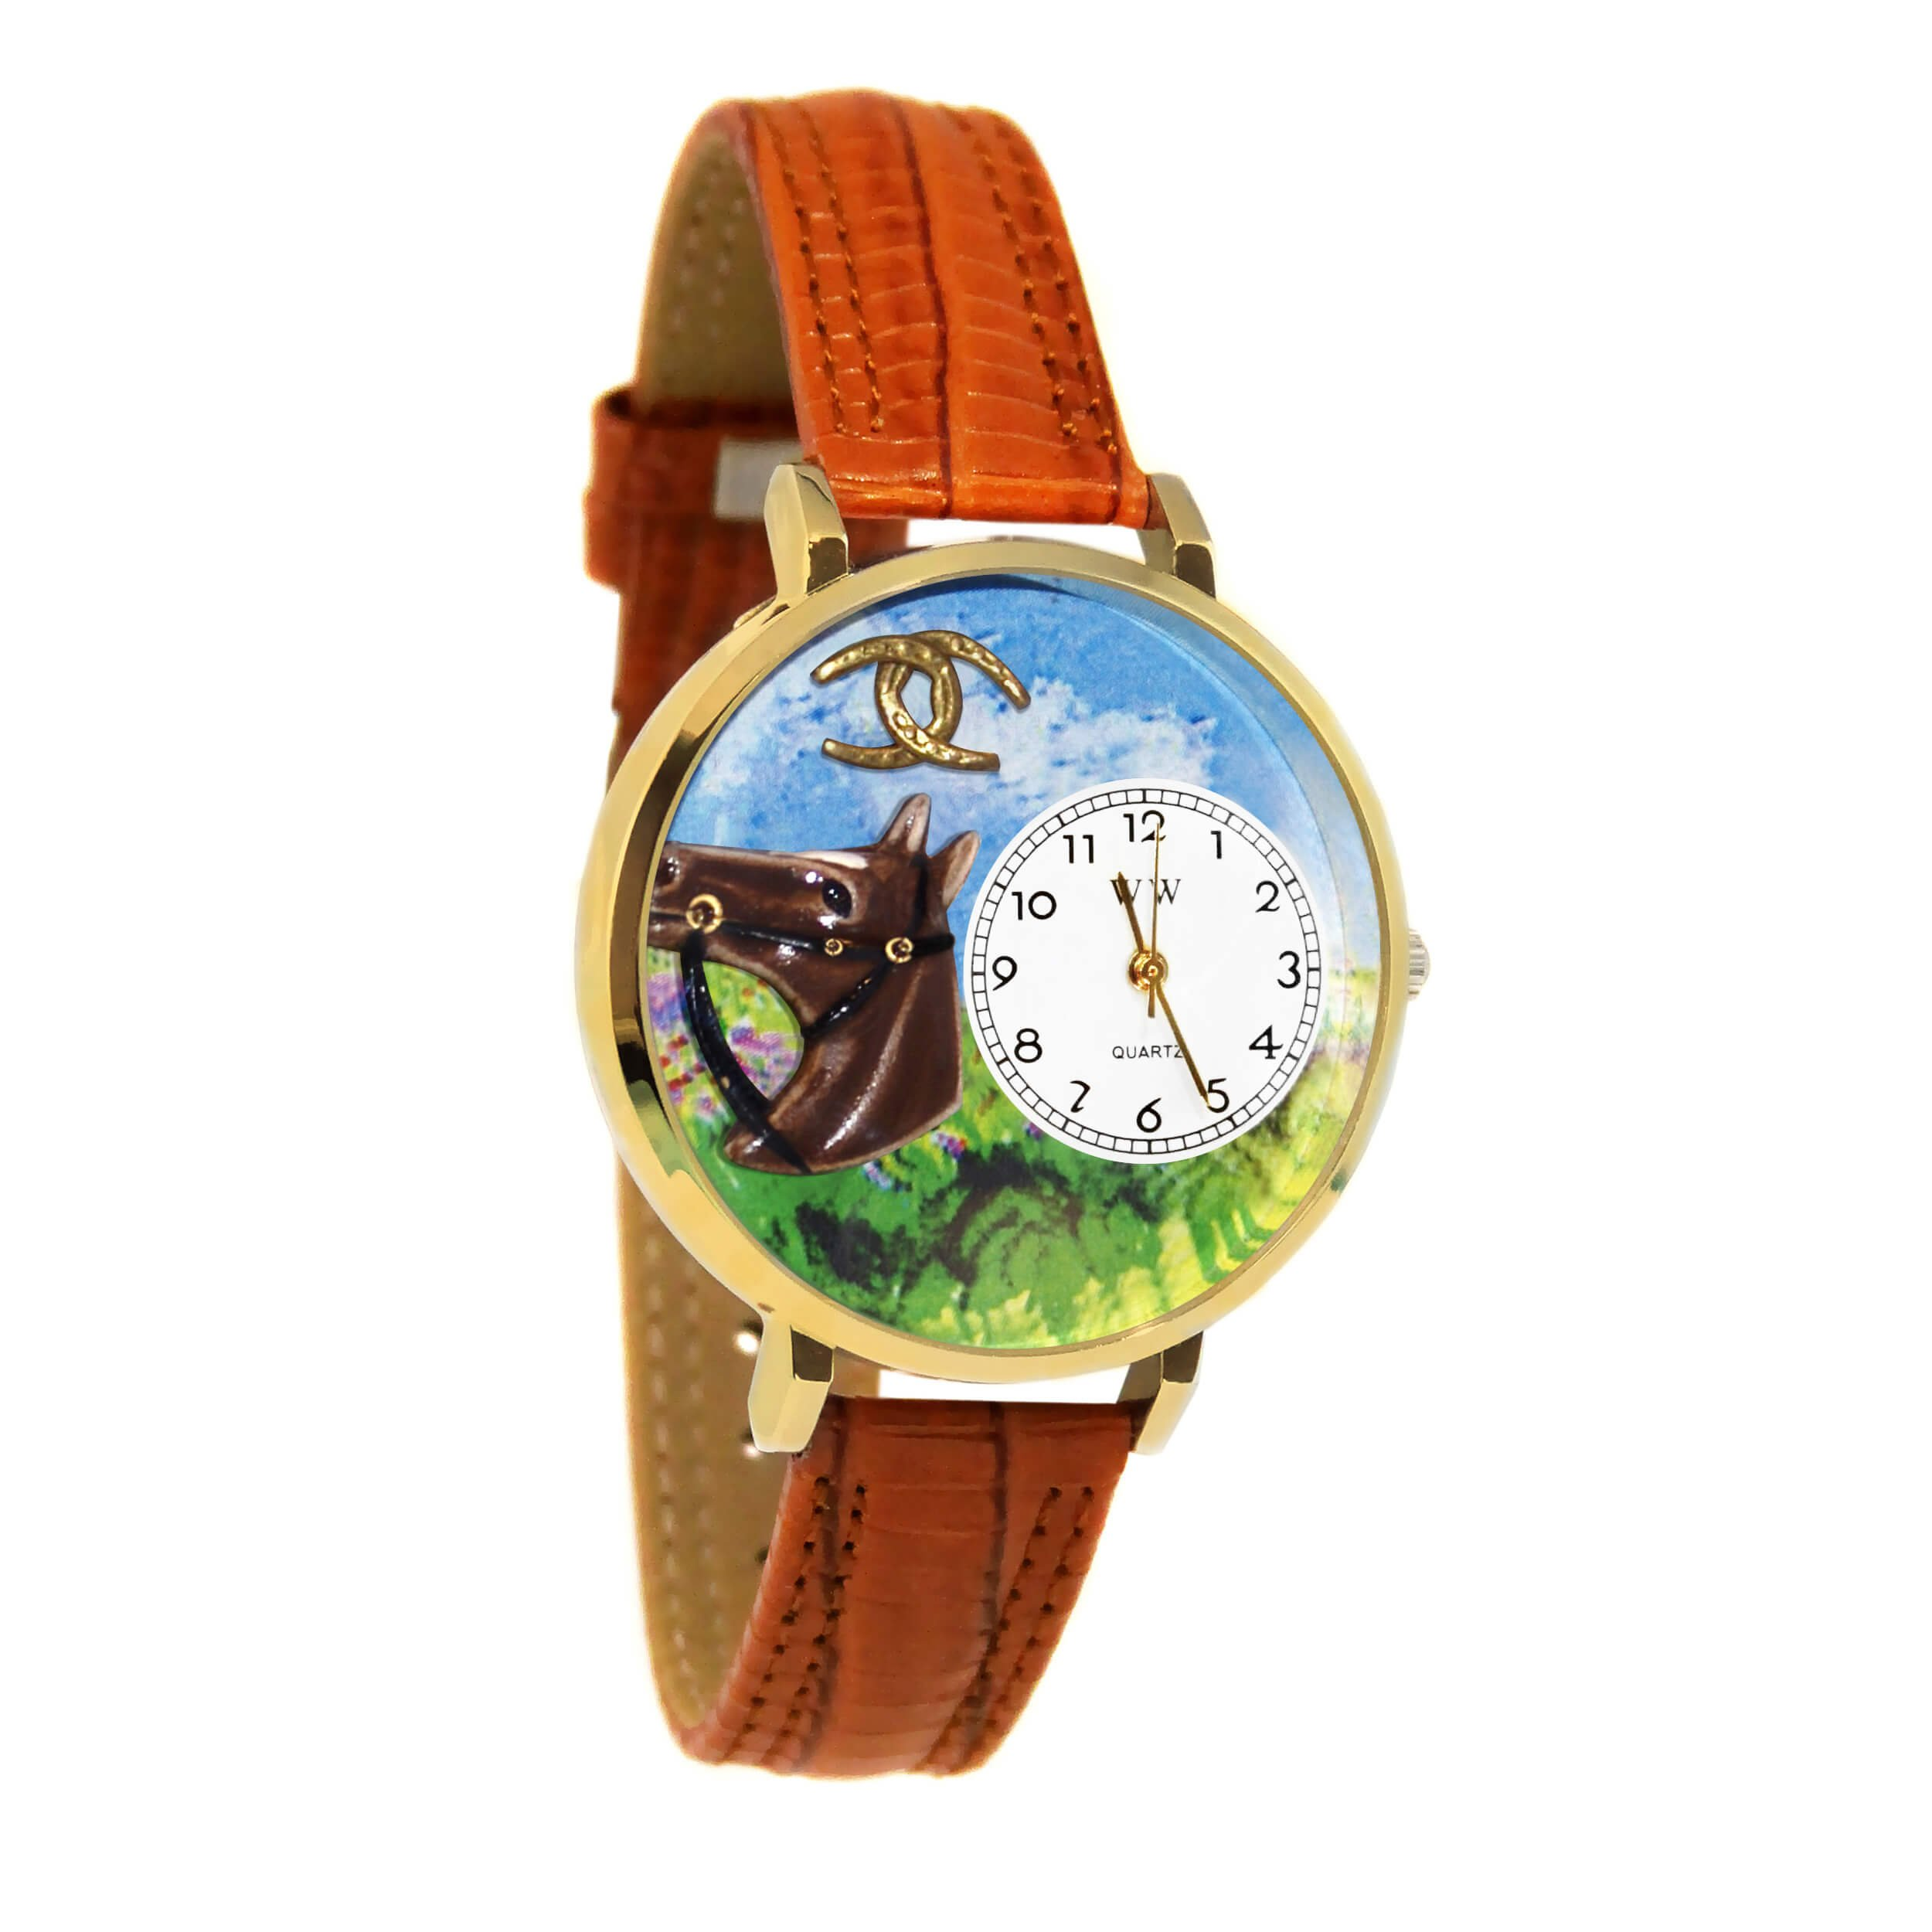 Whimsical Watches Unisex G0110005 Horse Head Brown Leather Watch